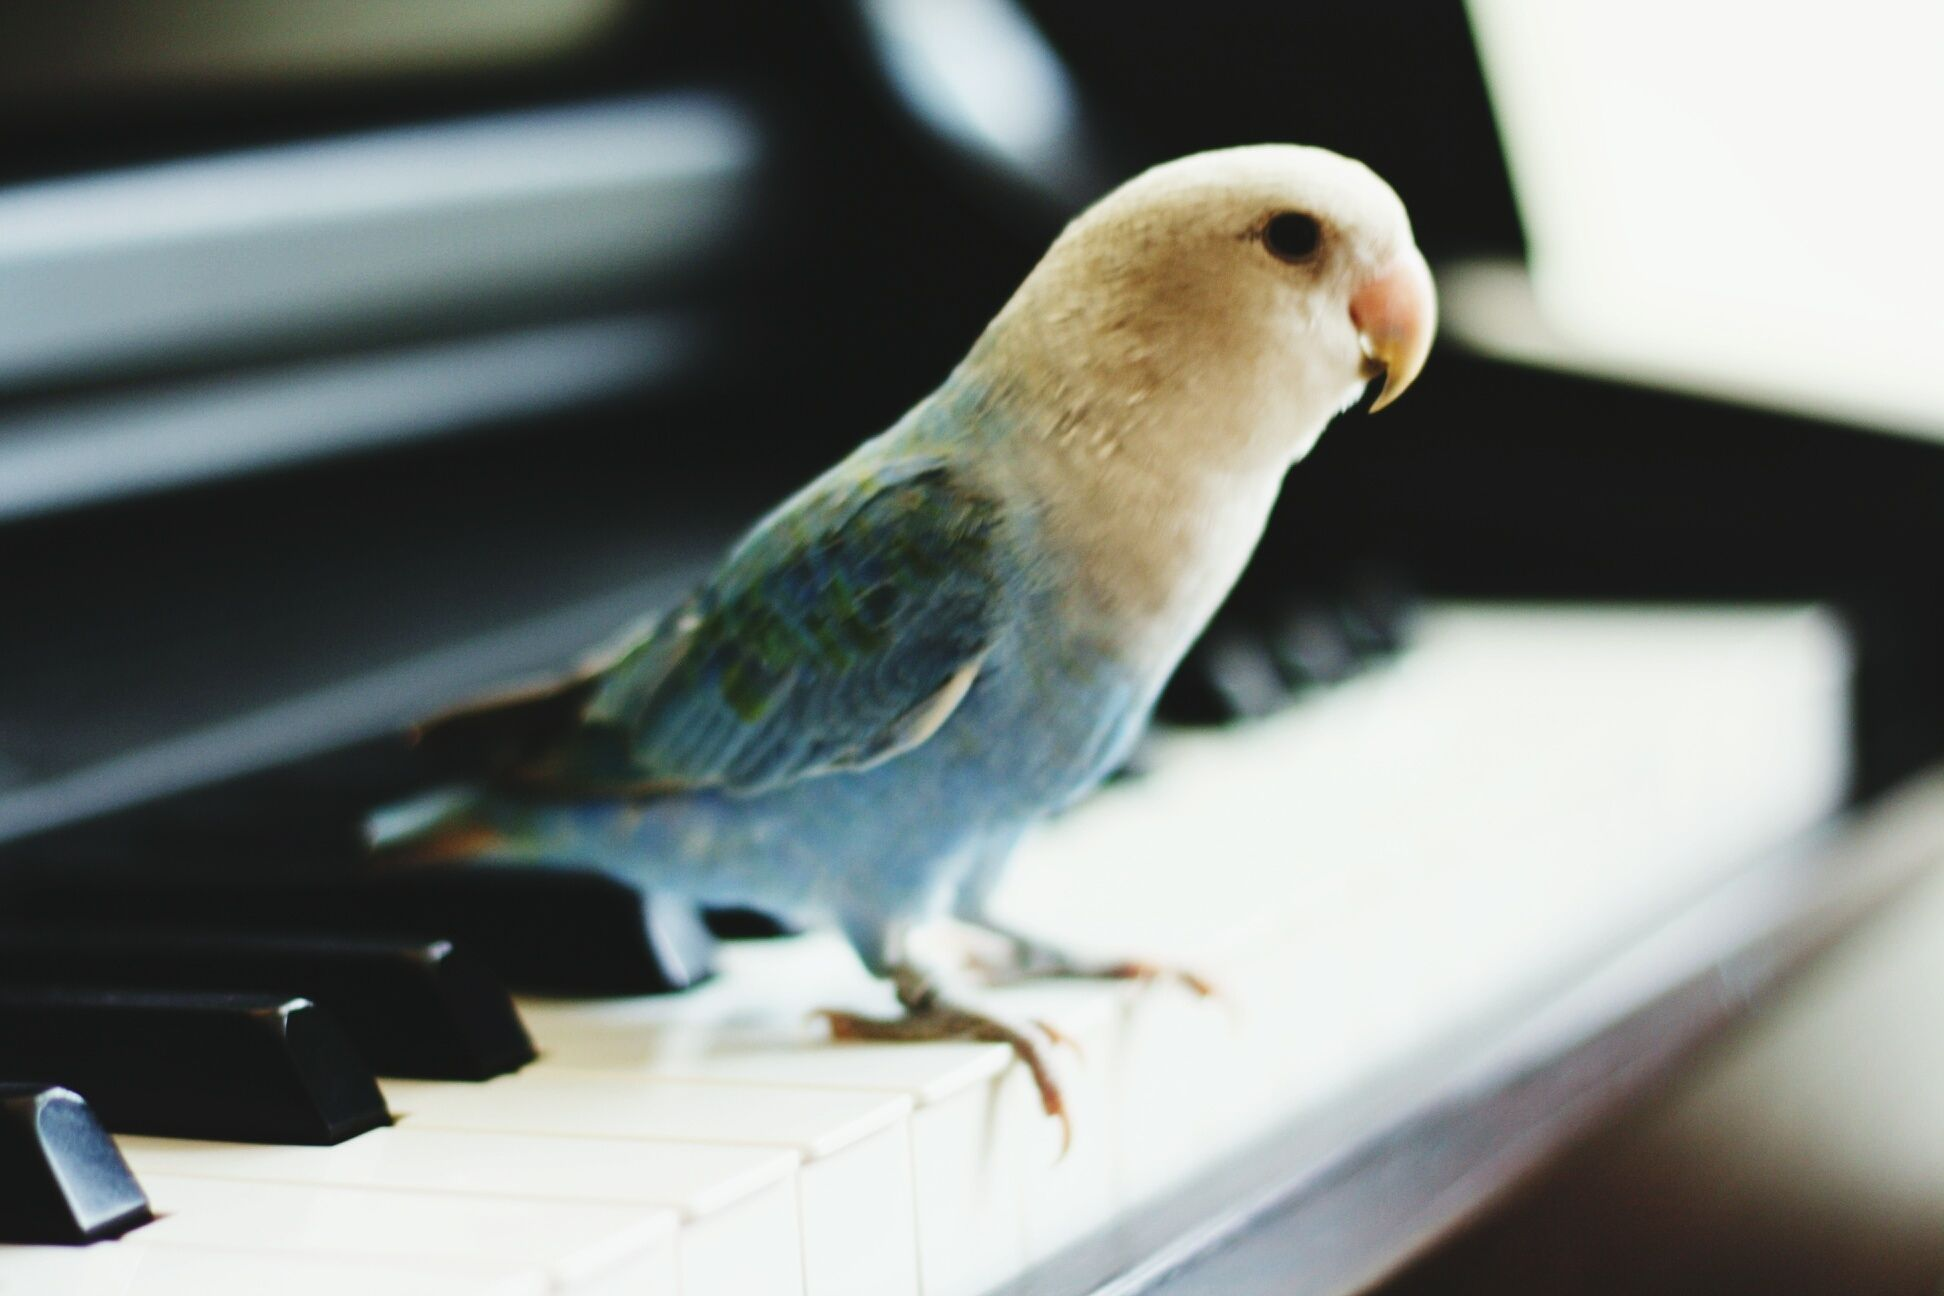 Close-up of parrot perching on piano